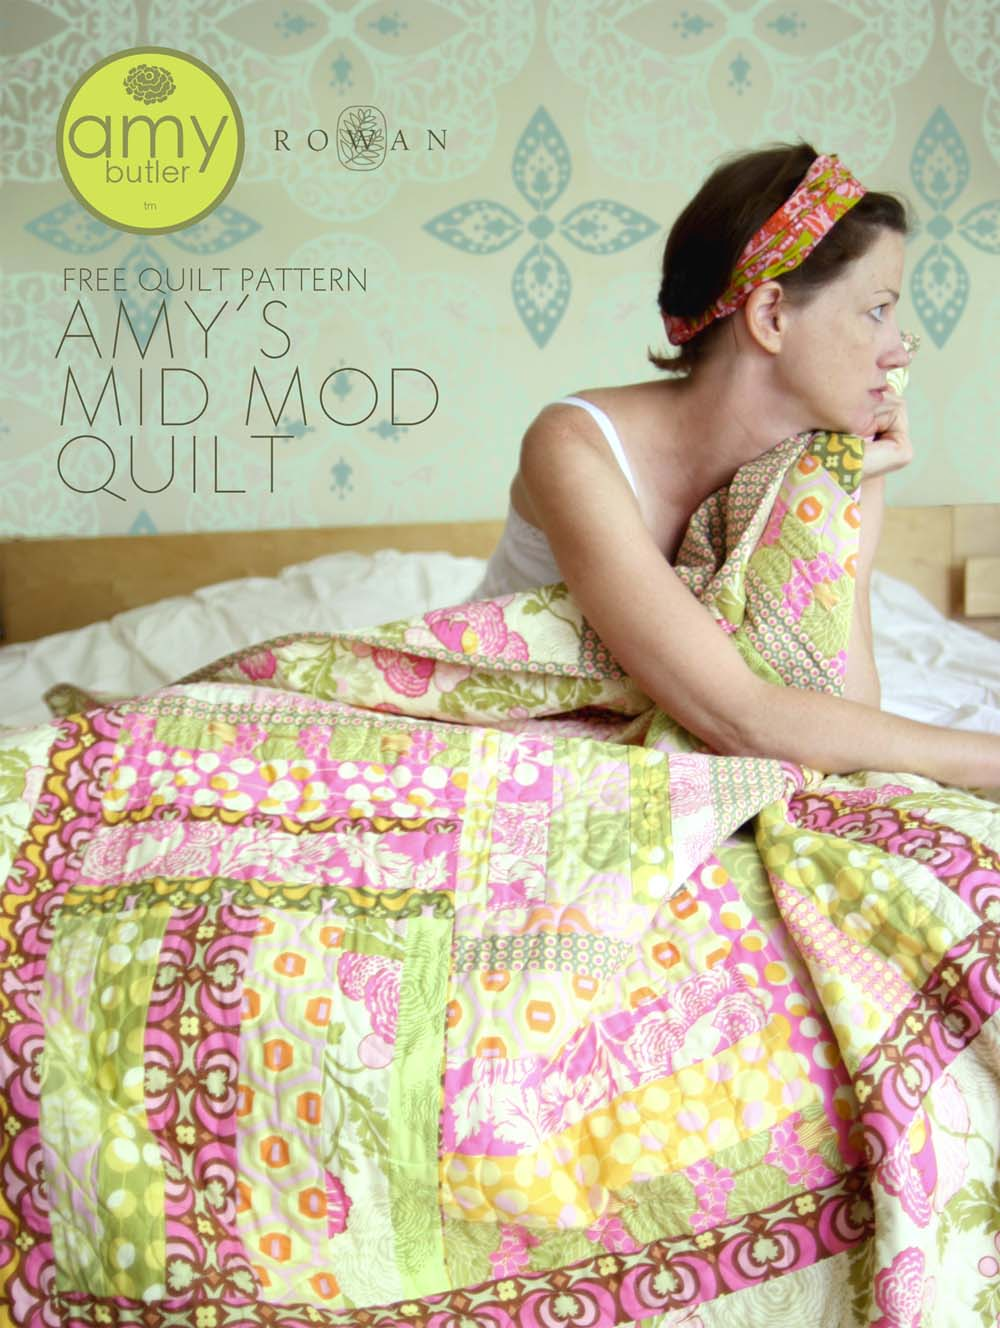 baby quilt kits, free quilt patterns, butterfly quilt pattern, quilts of valor